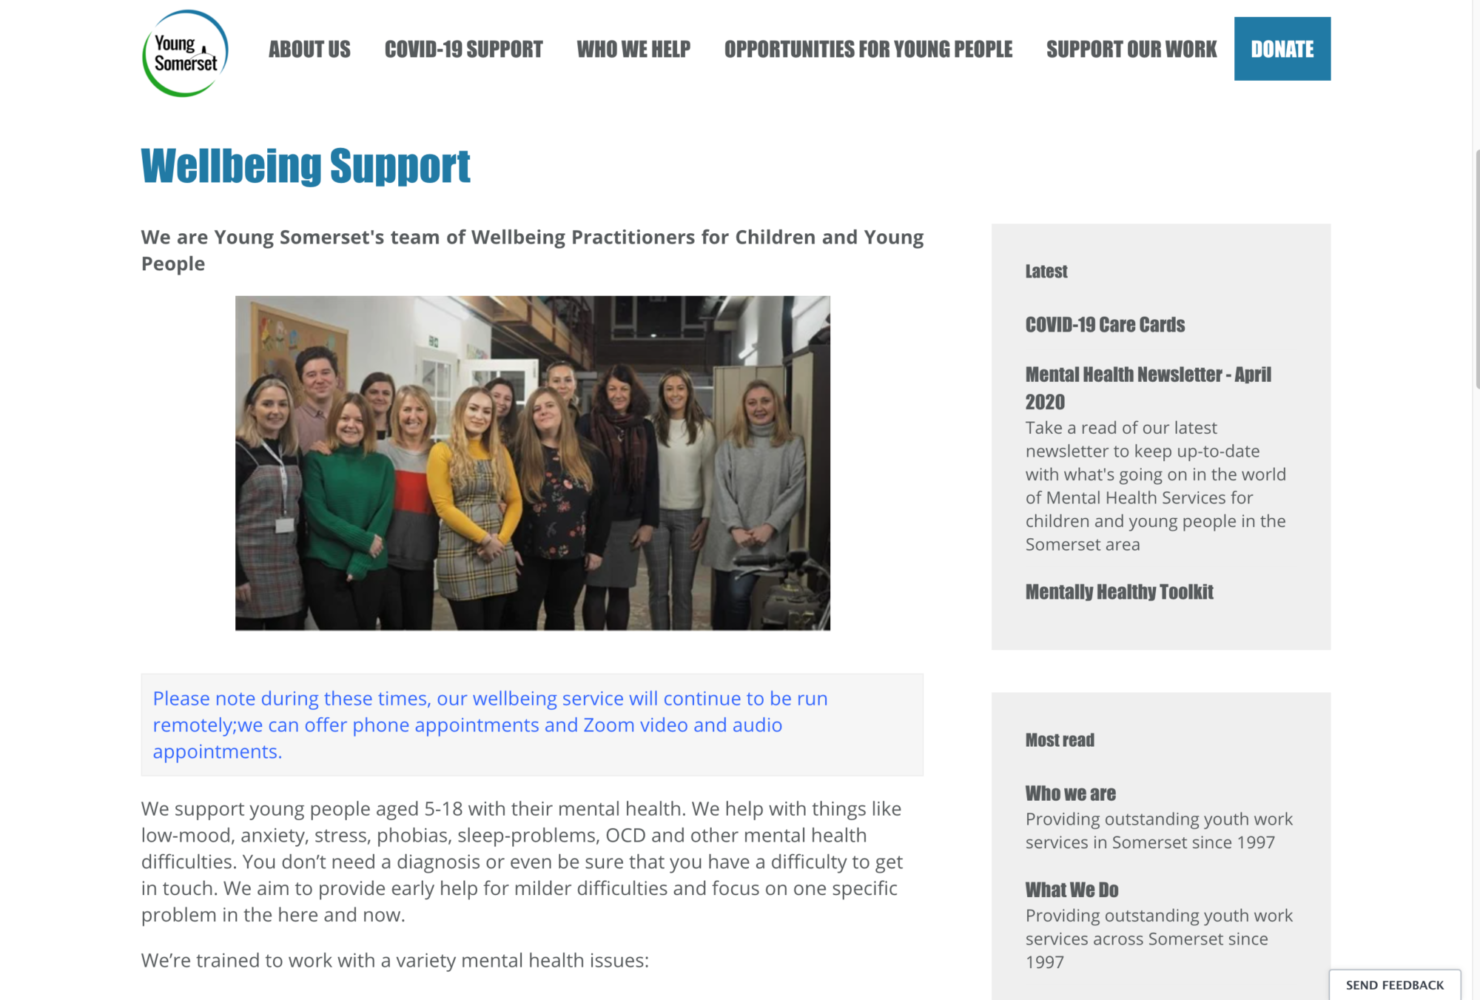 A preview of the wellbeing support page on the Young Somerset website